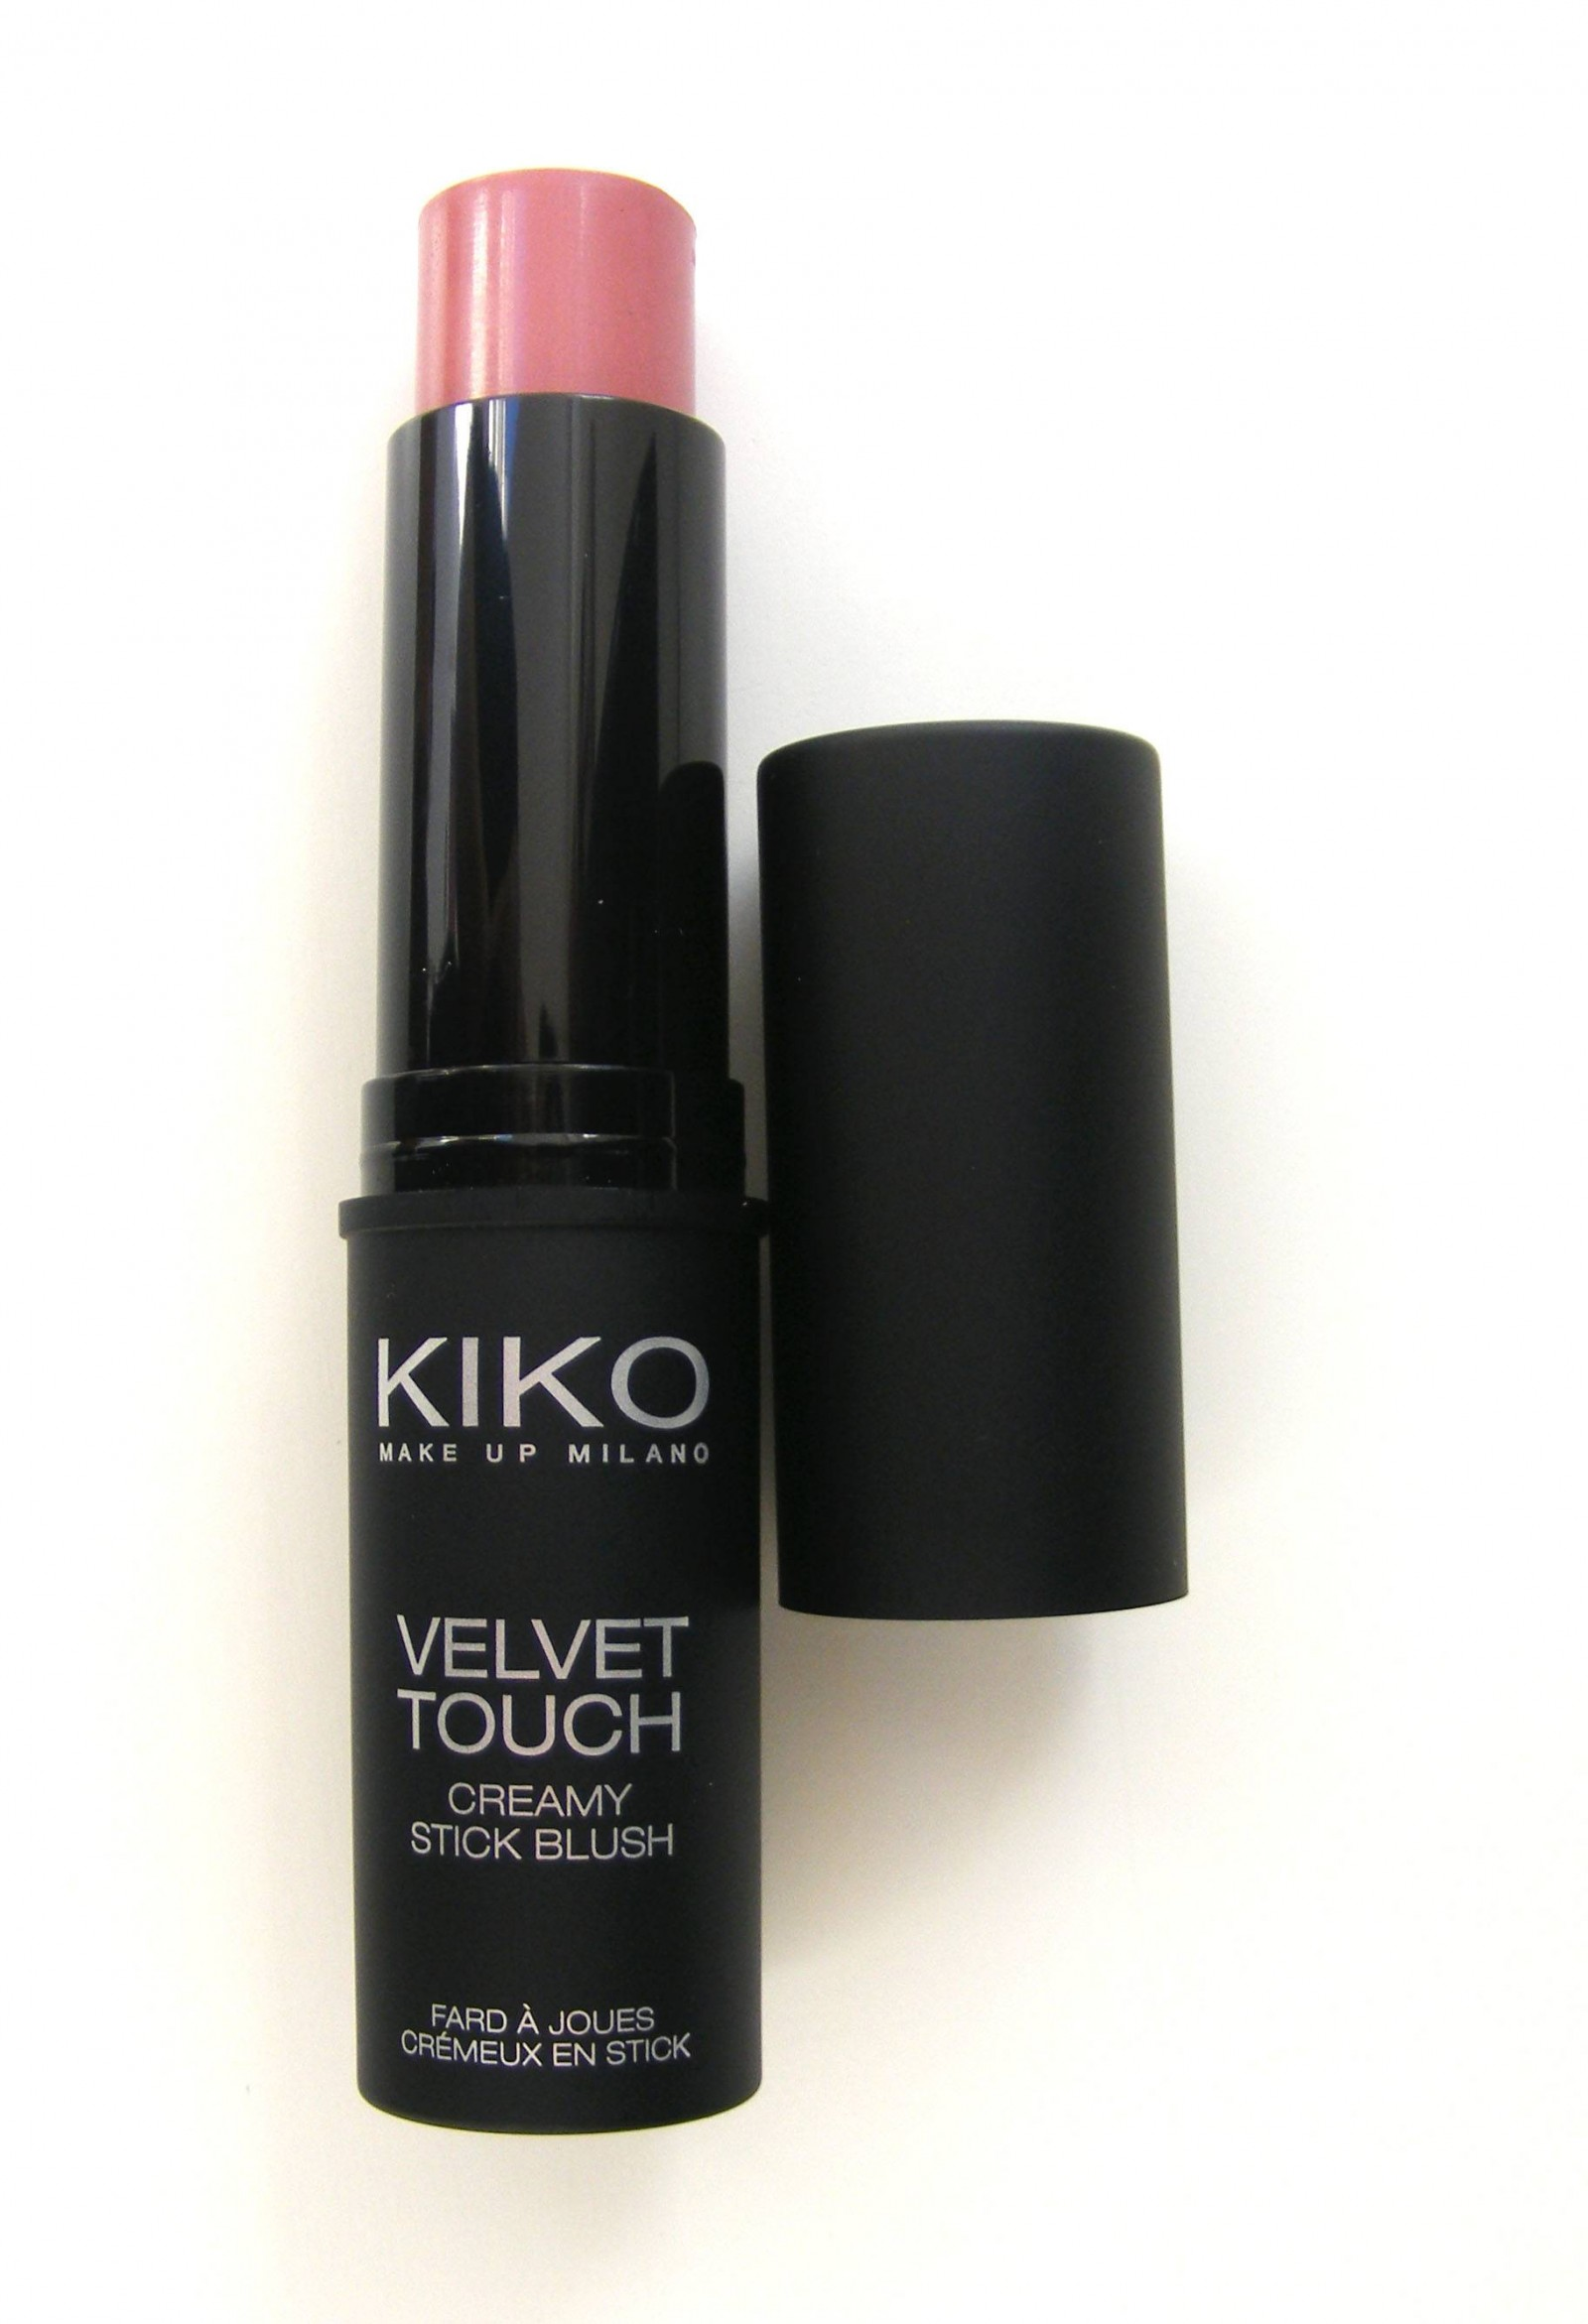 Kiko Velvet Touch Cream Blush Stick